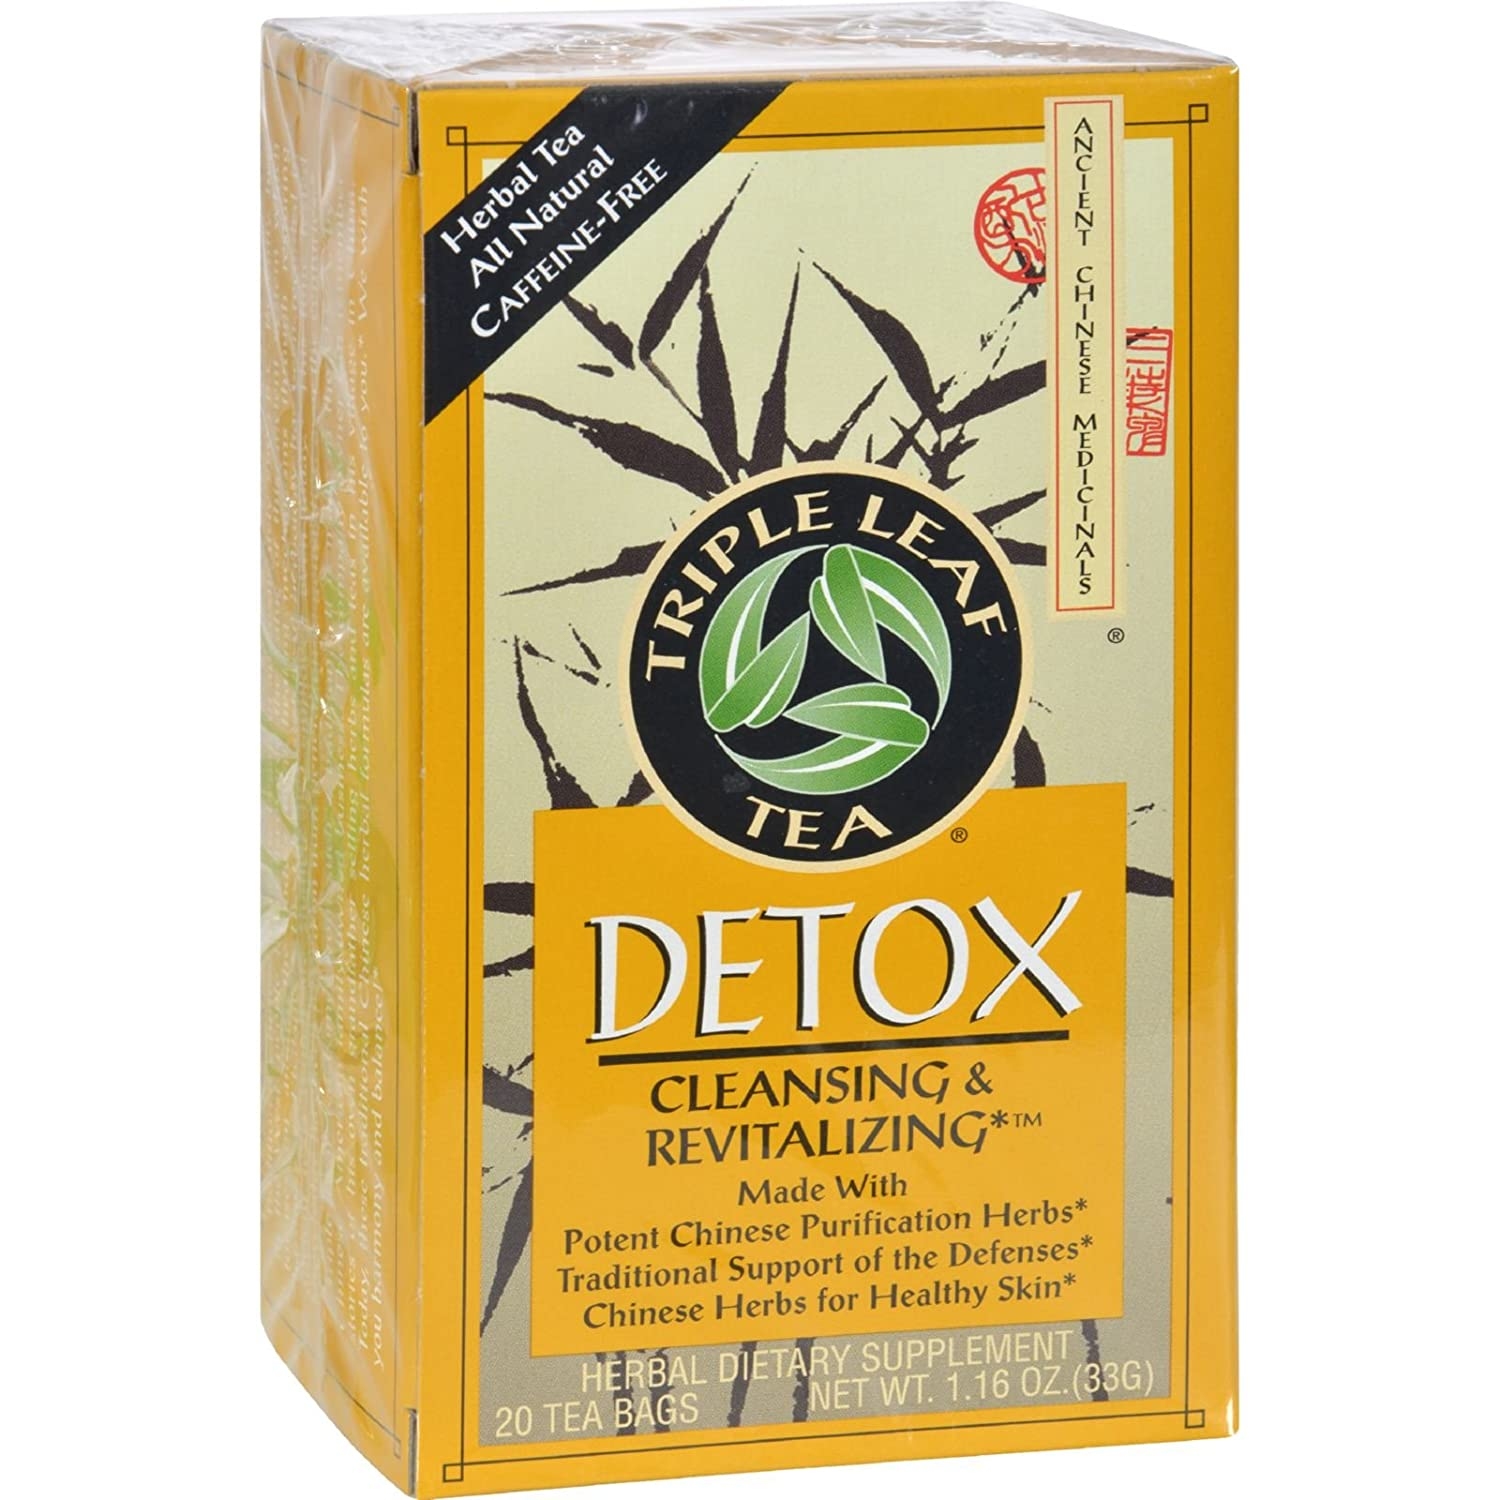 Detox Tea, 20 bags(case of 6) by Triple Leaf Tea (Pack of 5)